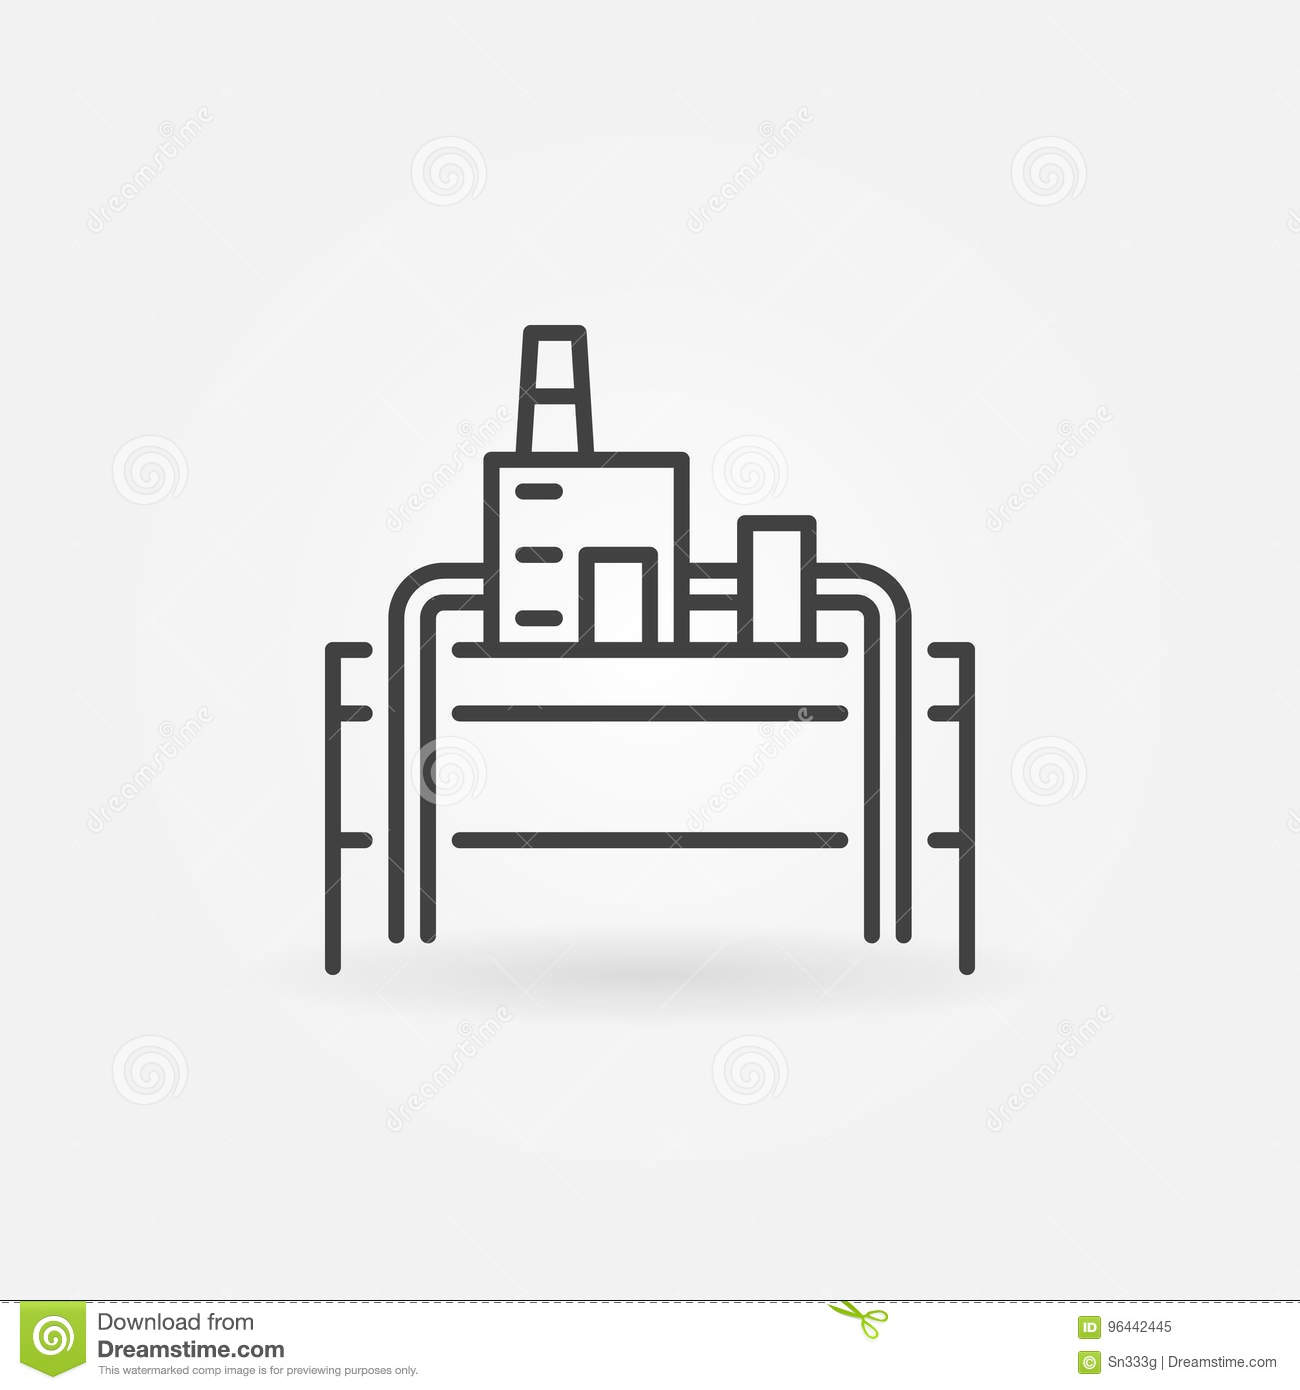 Geothermal Power Plant Icon Stock Vector Illustration Of Pictogram Diagram Download Generation 96442445